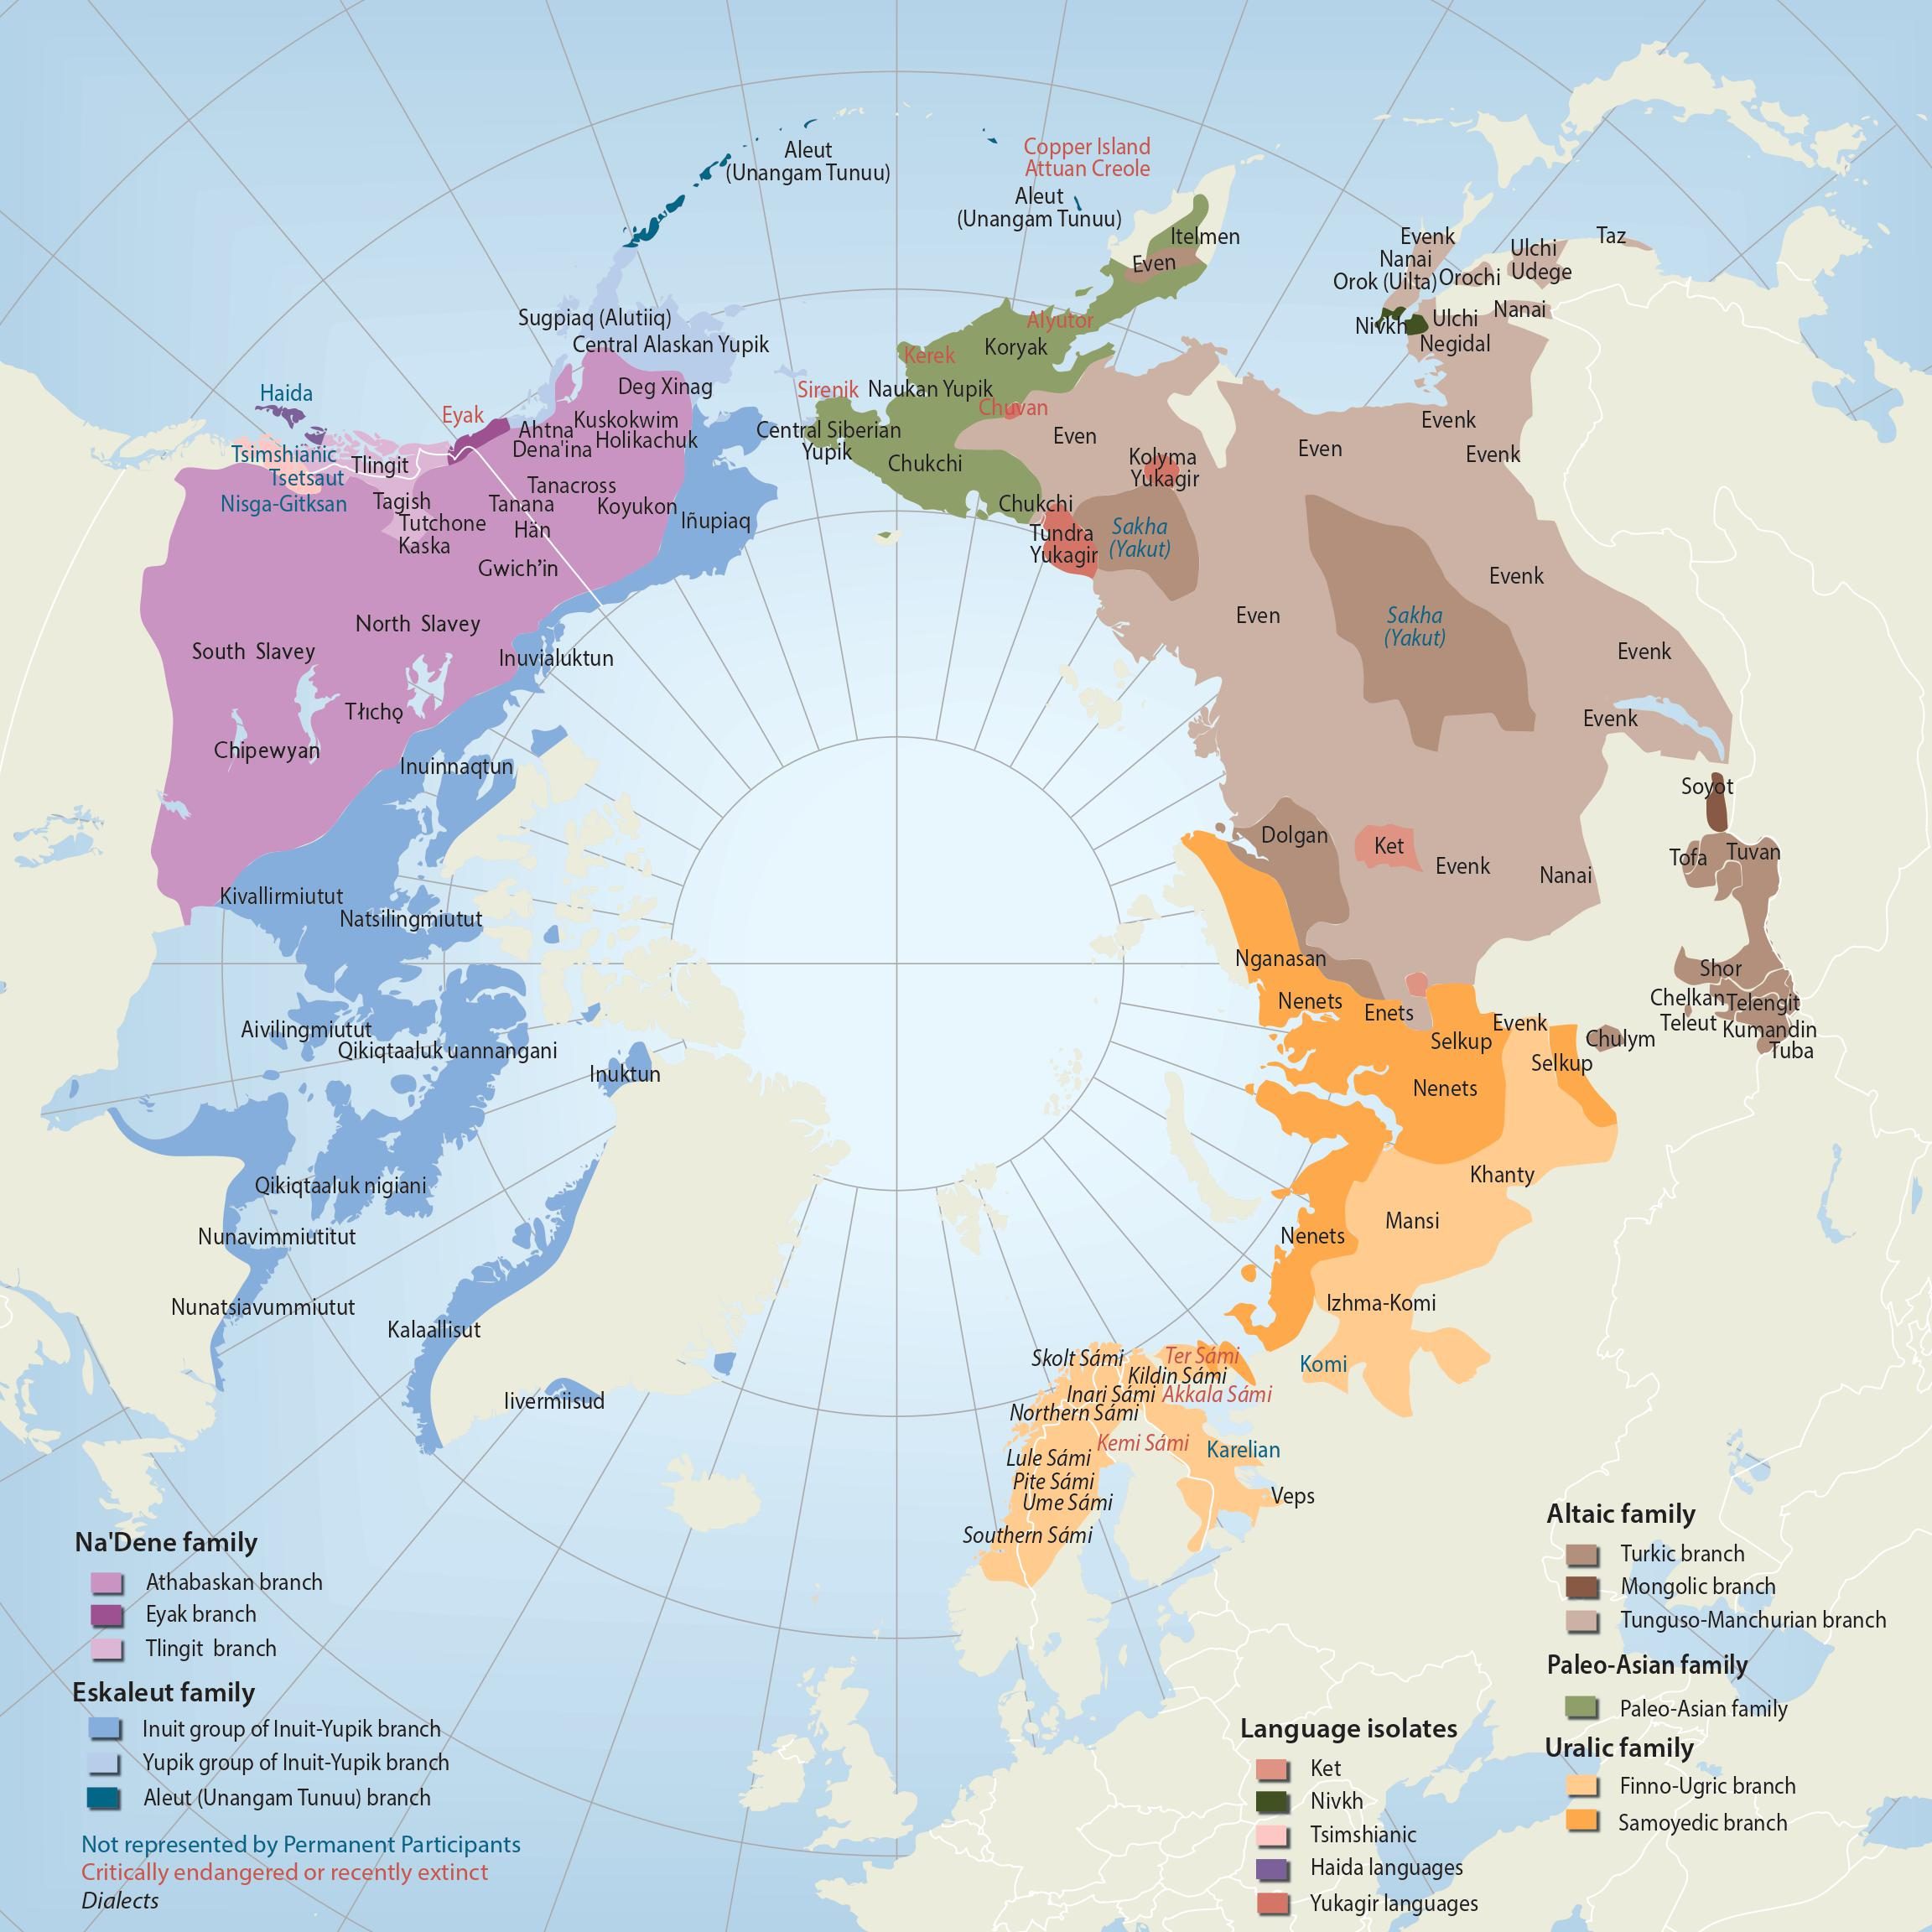 Map showing the Arctic circle with geographic areas demarcated according to Indigenous language